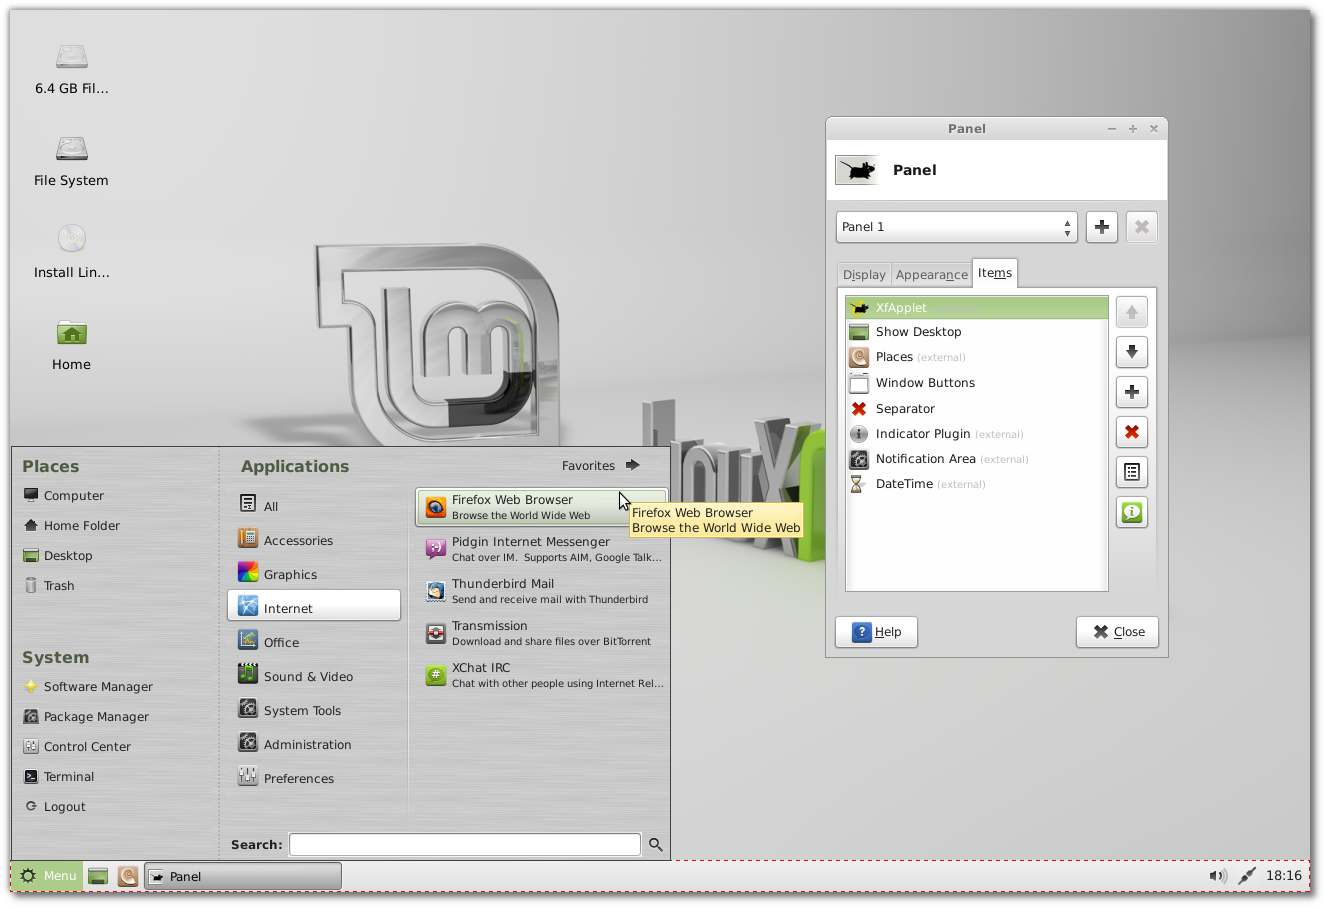 New features in Linux Mint 13 Xfce - Linux Mint